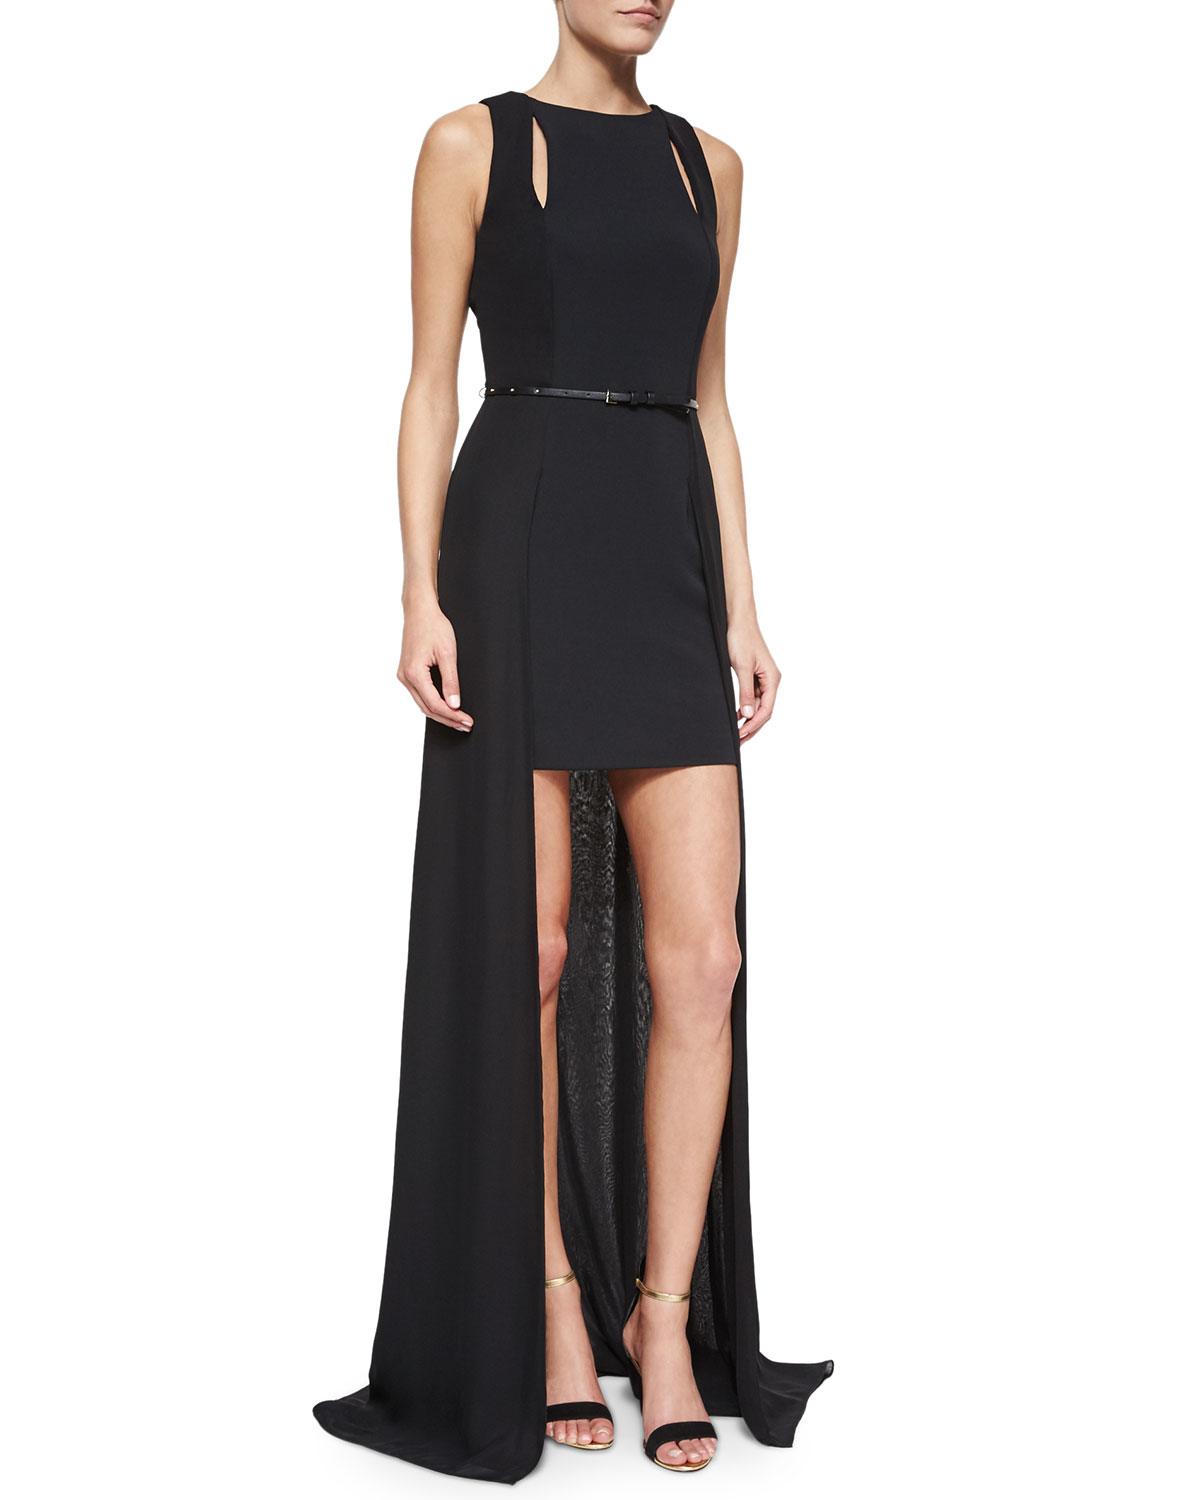 4499b0841c5 Halston Sleeveless Belted High-low Gown in Black - Lyst